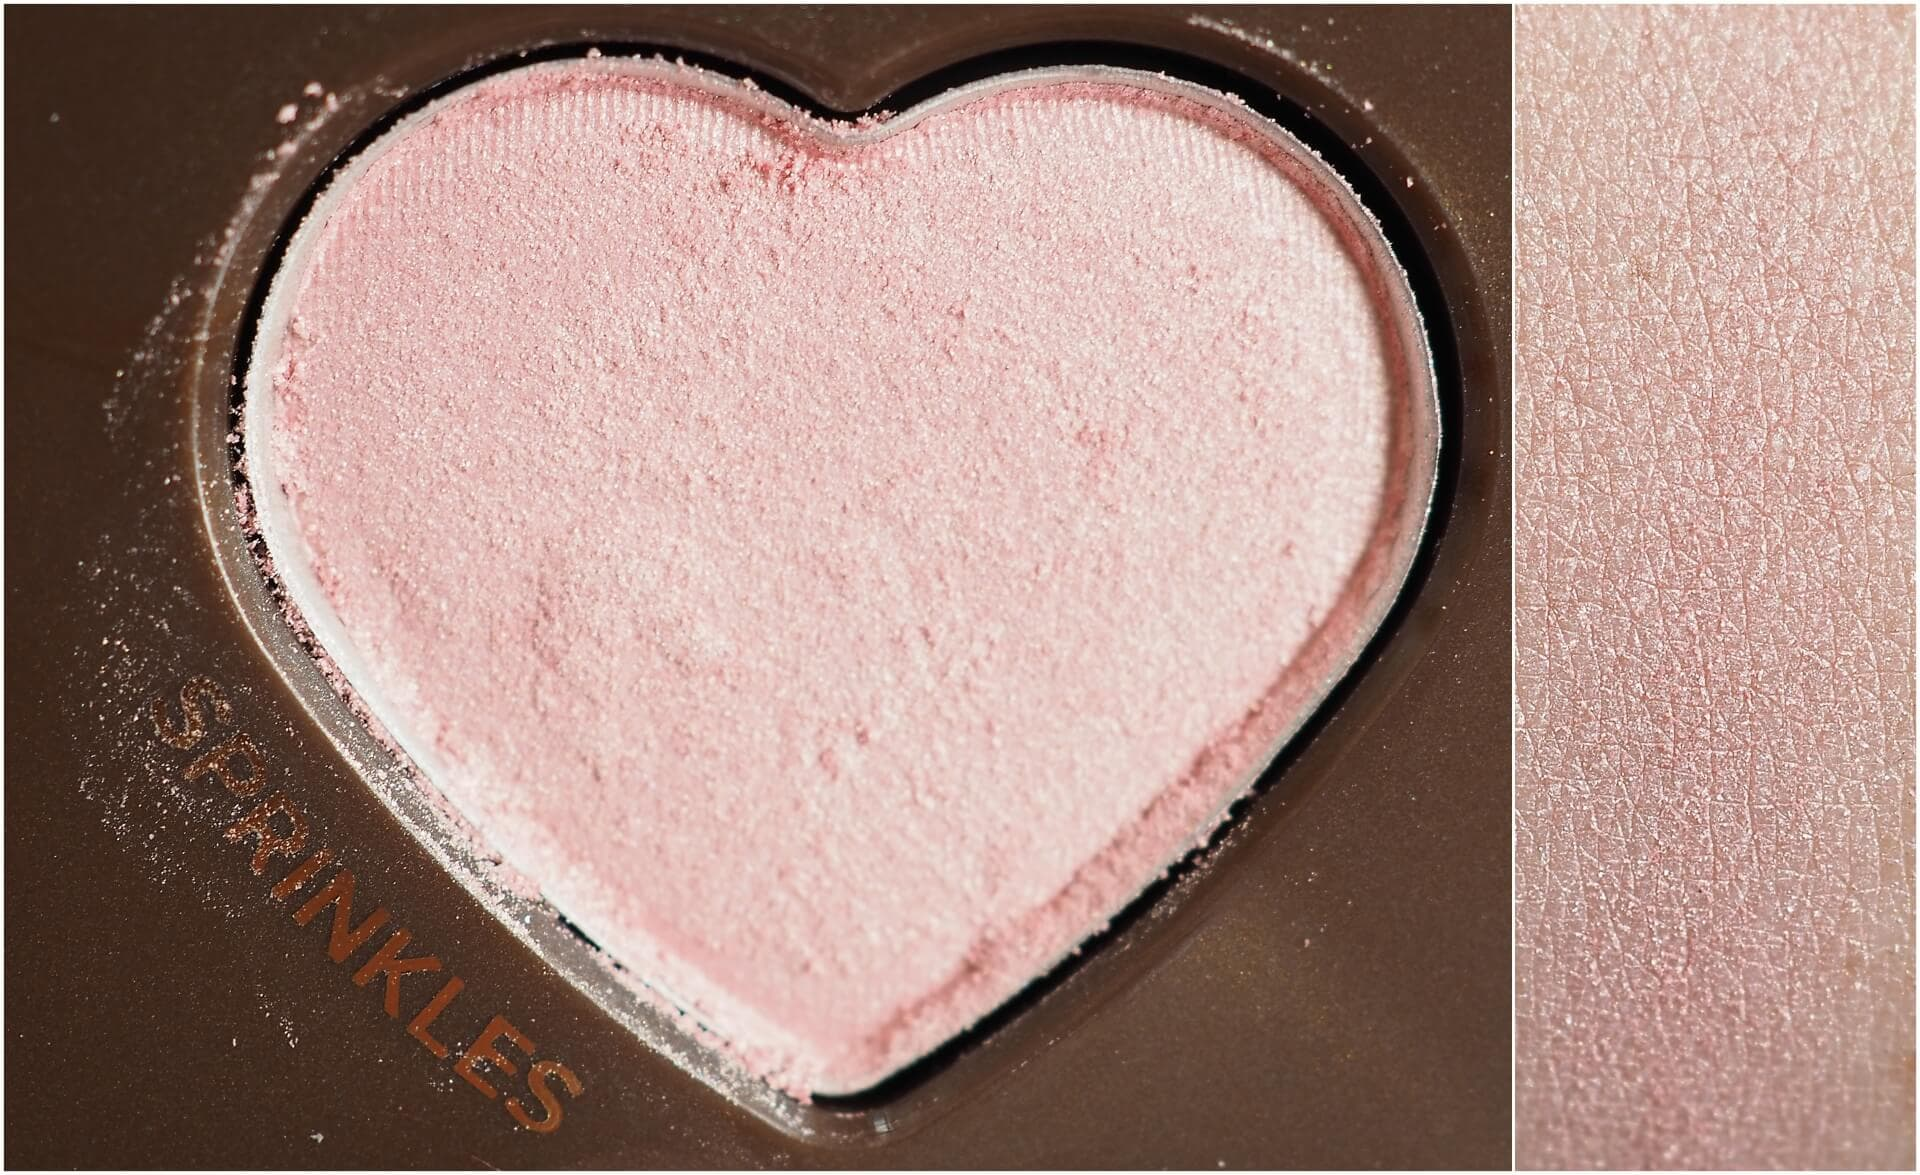 TOO FACED CHOCOLATE BOB BON